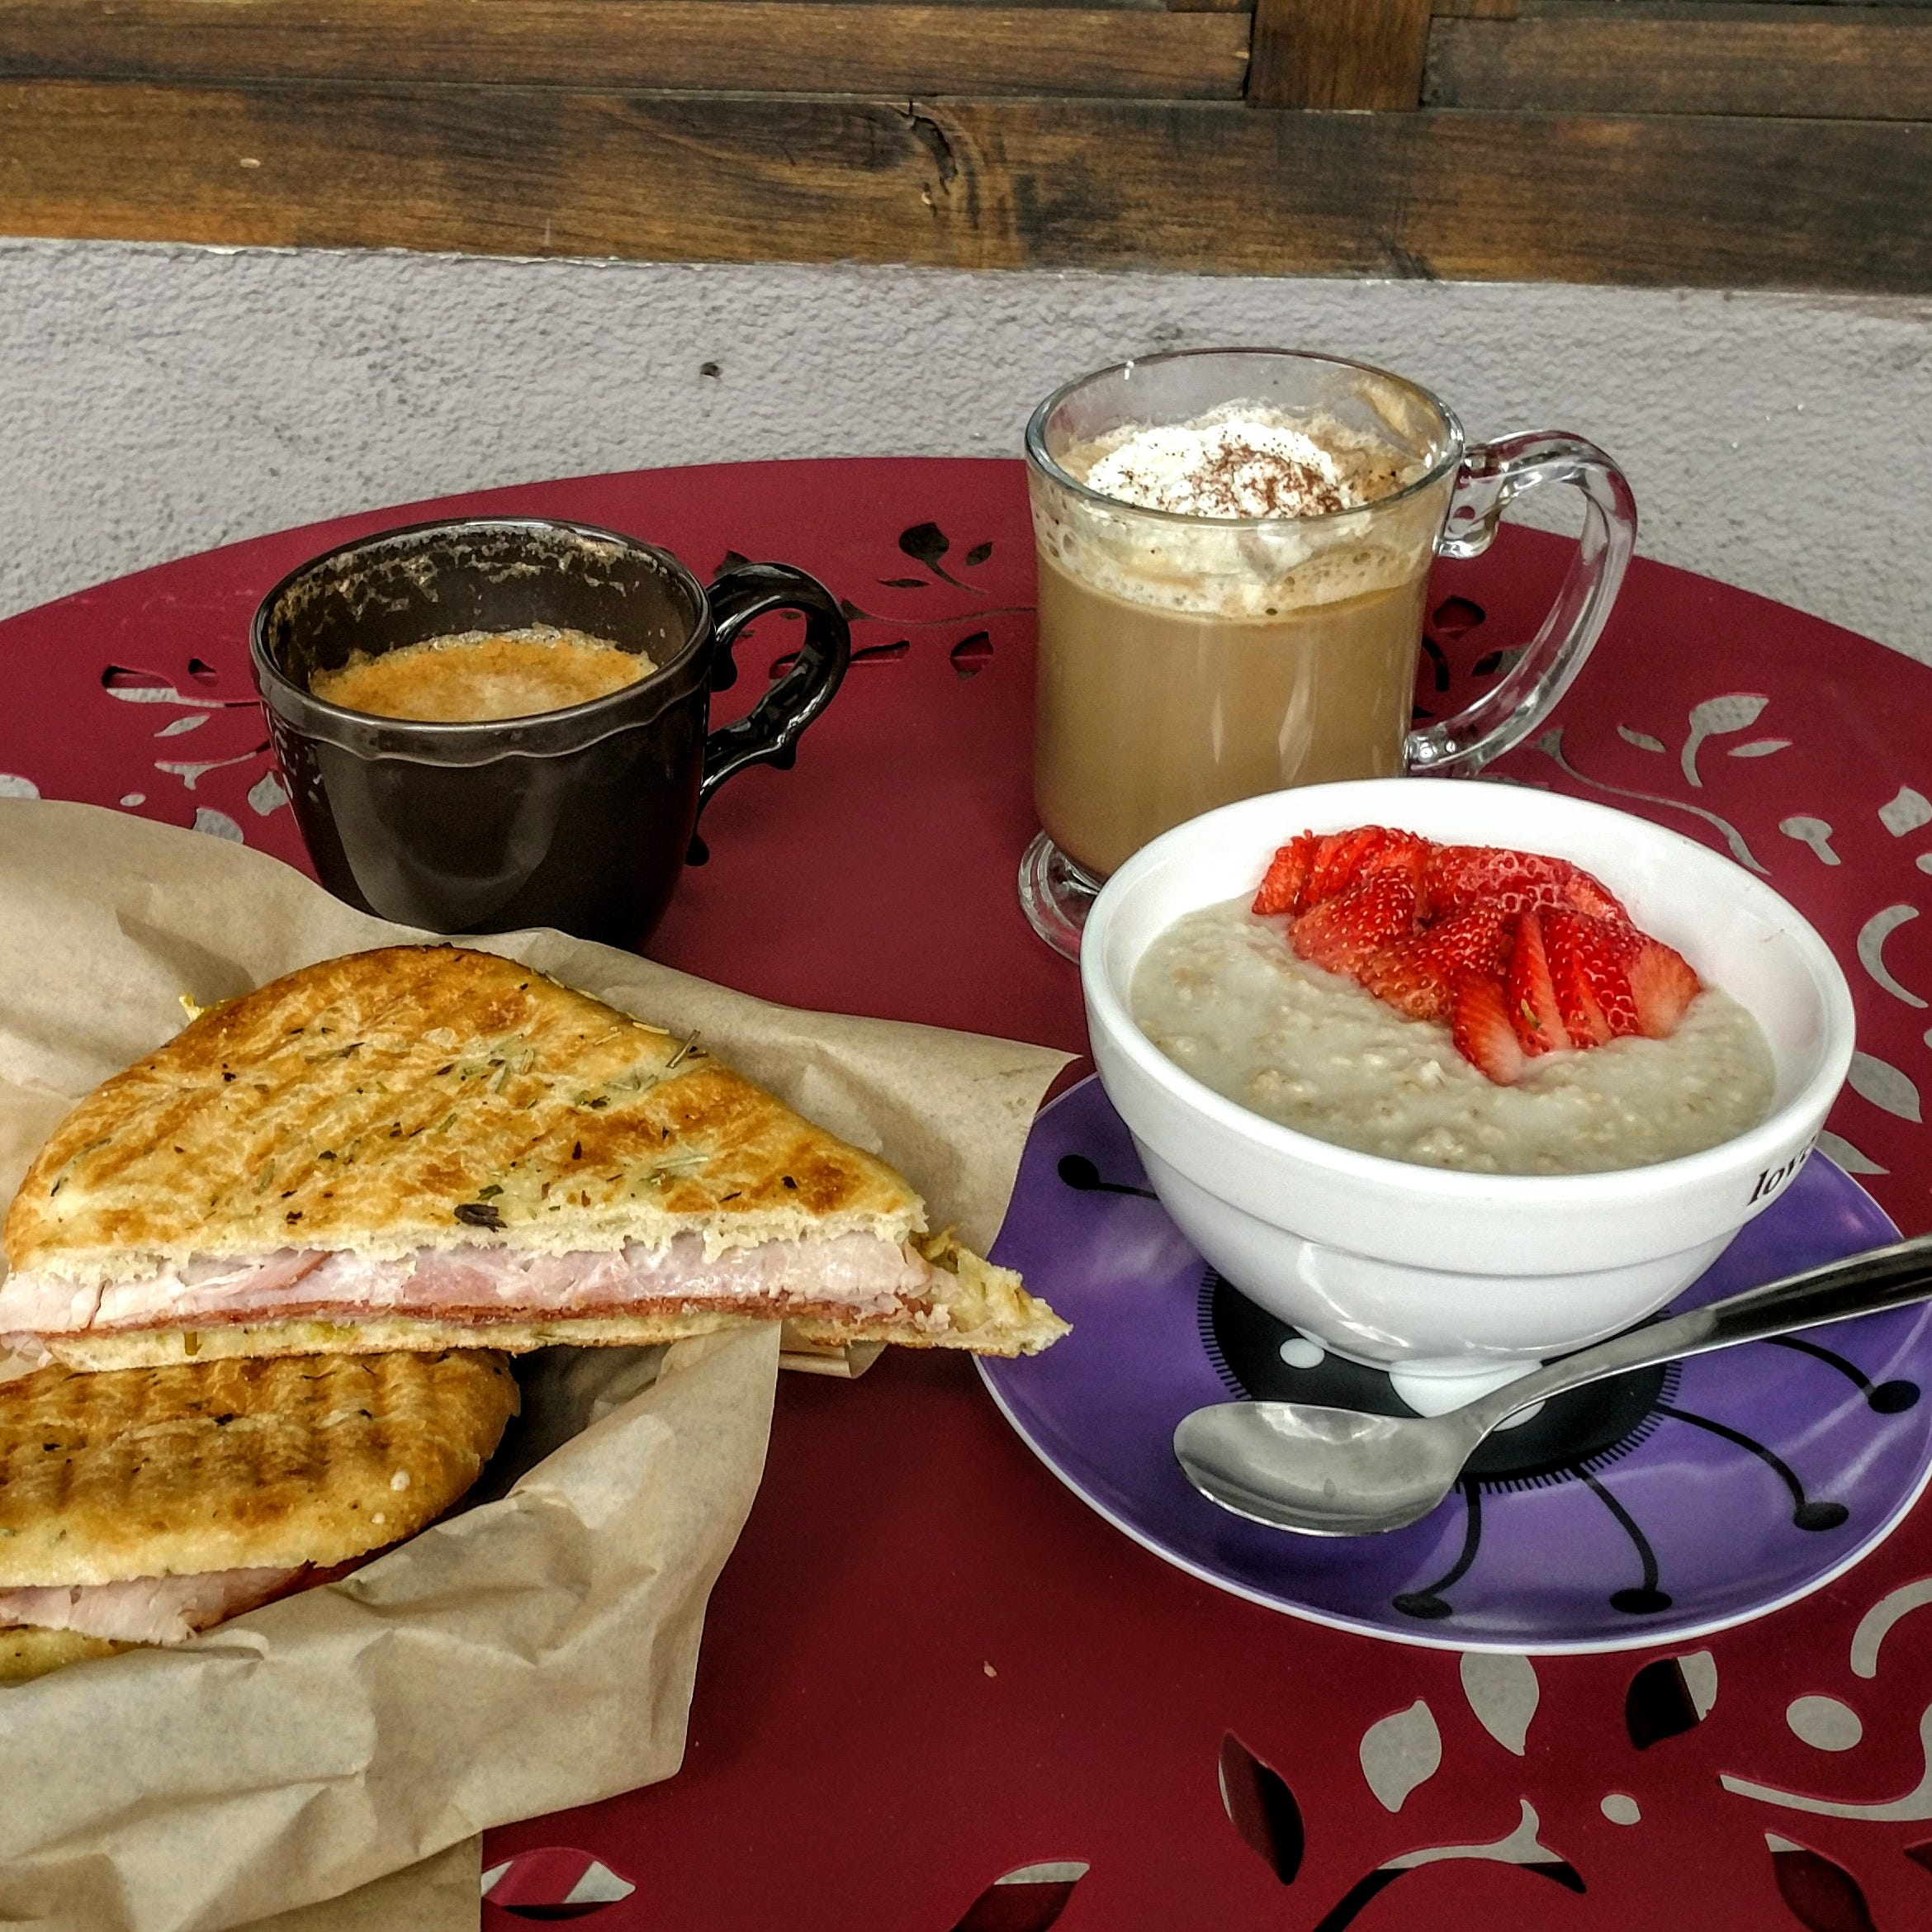 Grab some friends, then grab some grub and a cup of joe at Moms Coffee